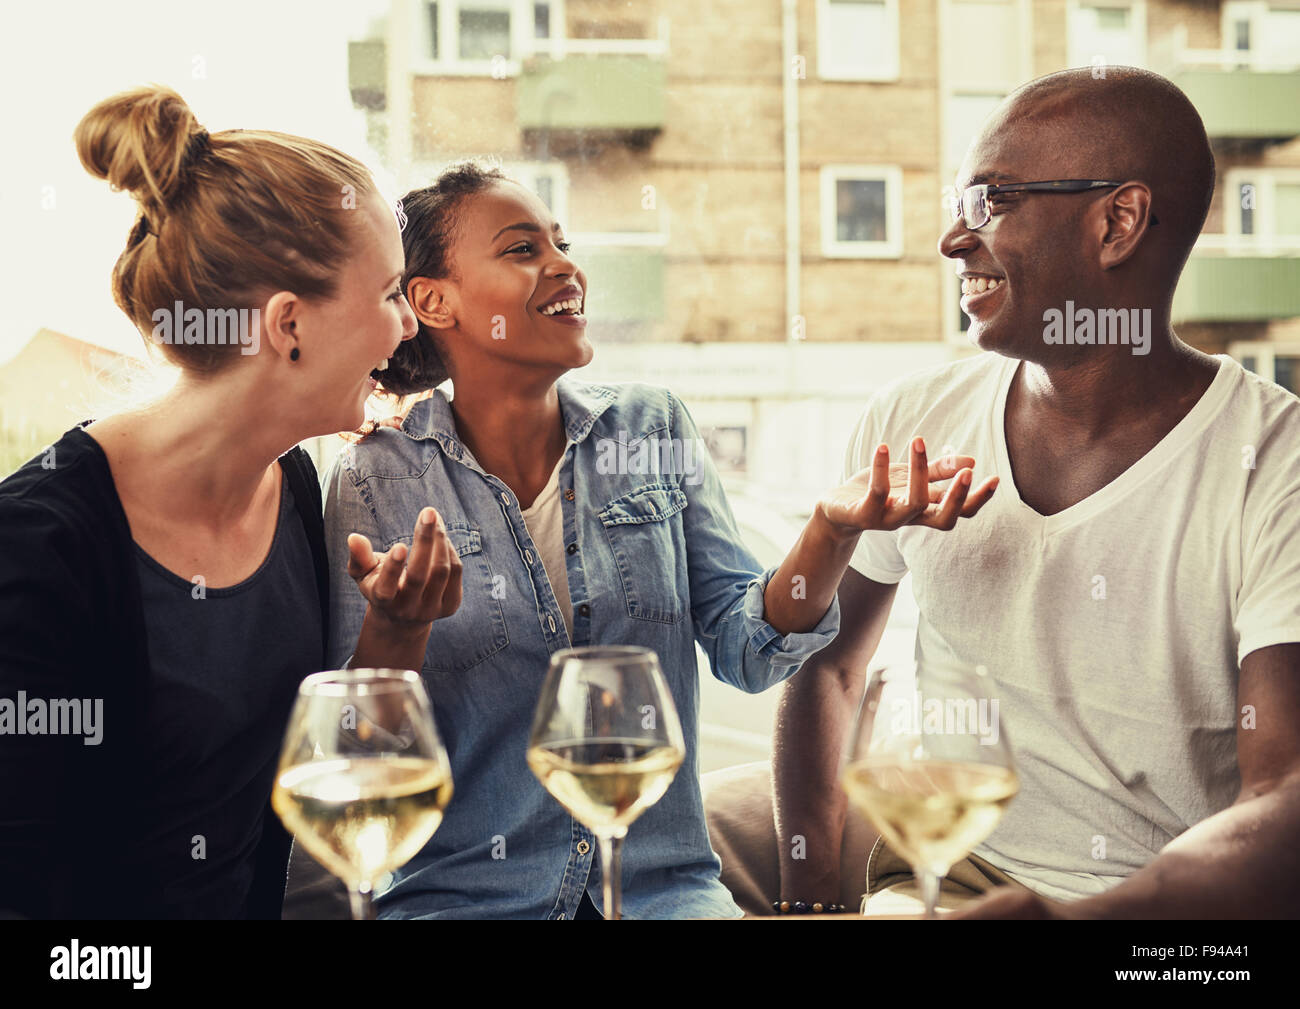 Les amis de coin, multi conception ethnique, de rire et de passer un bon moment Photo Stock